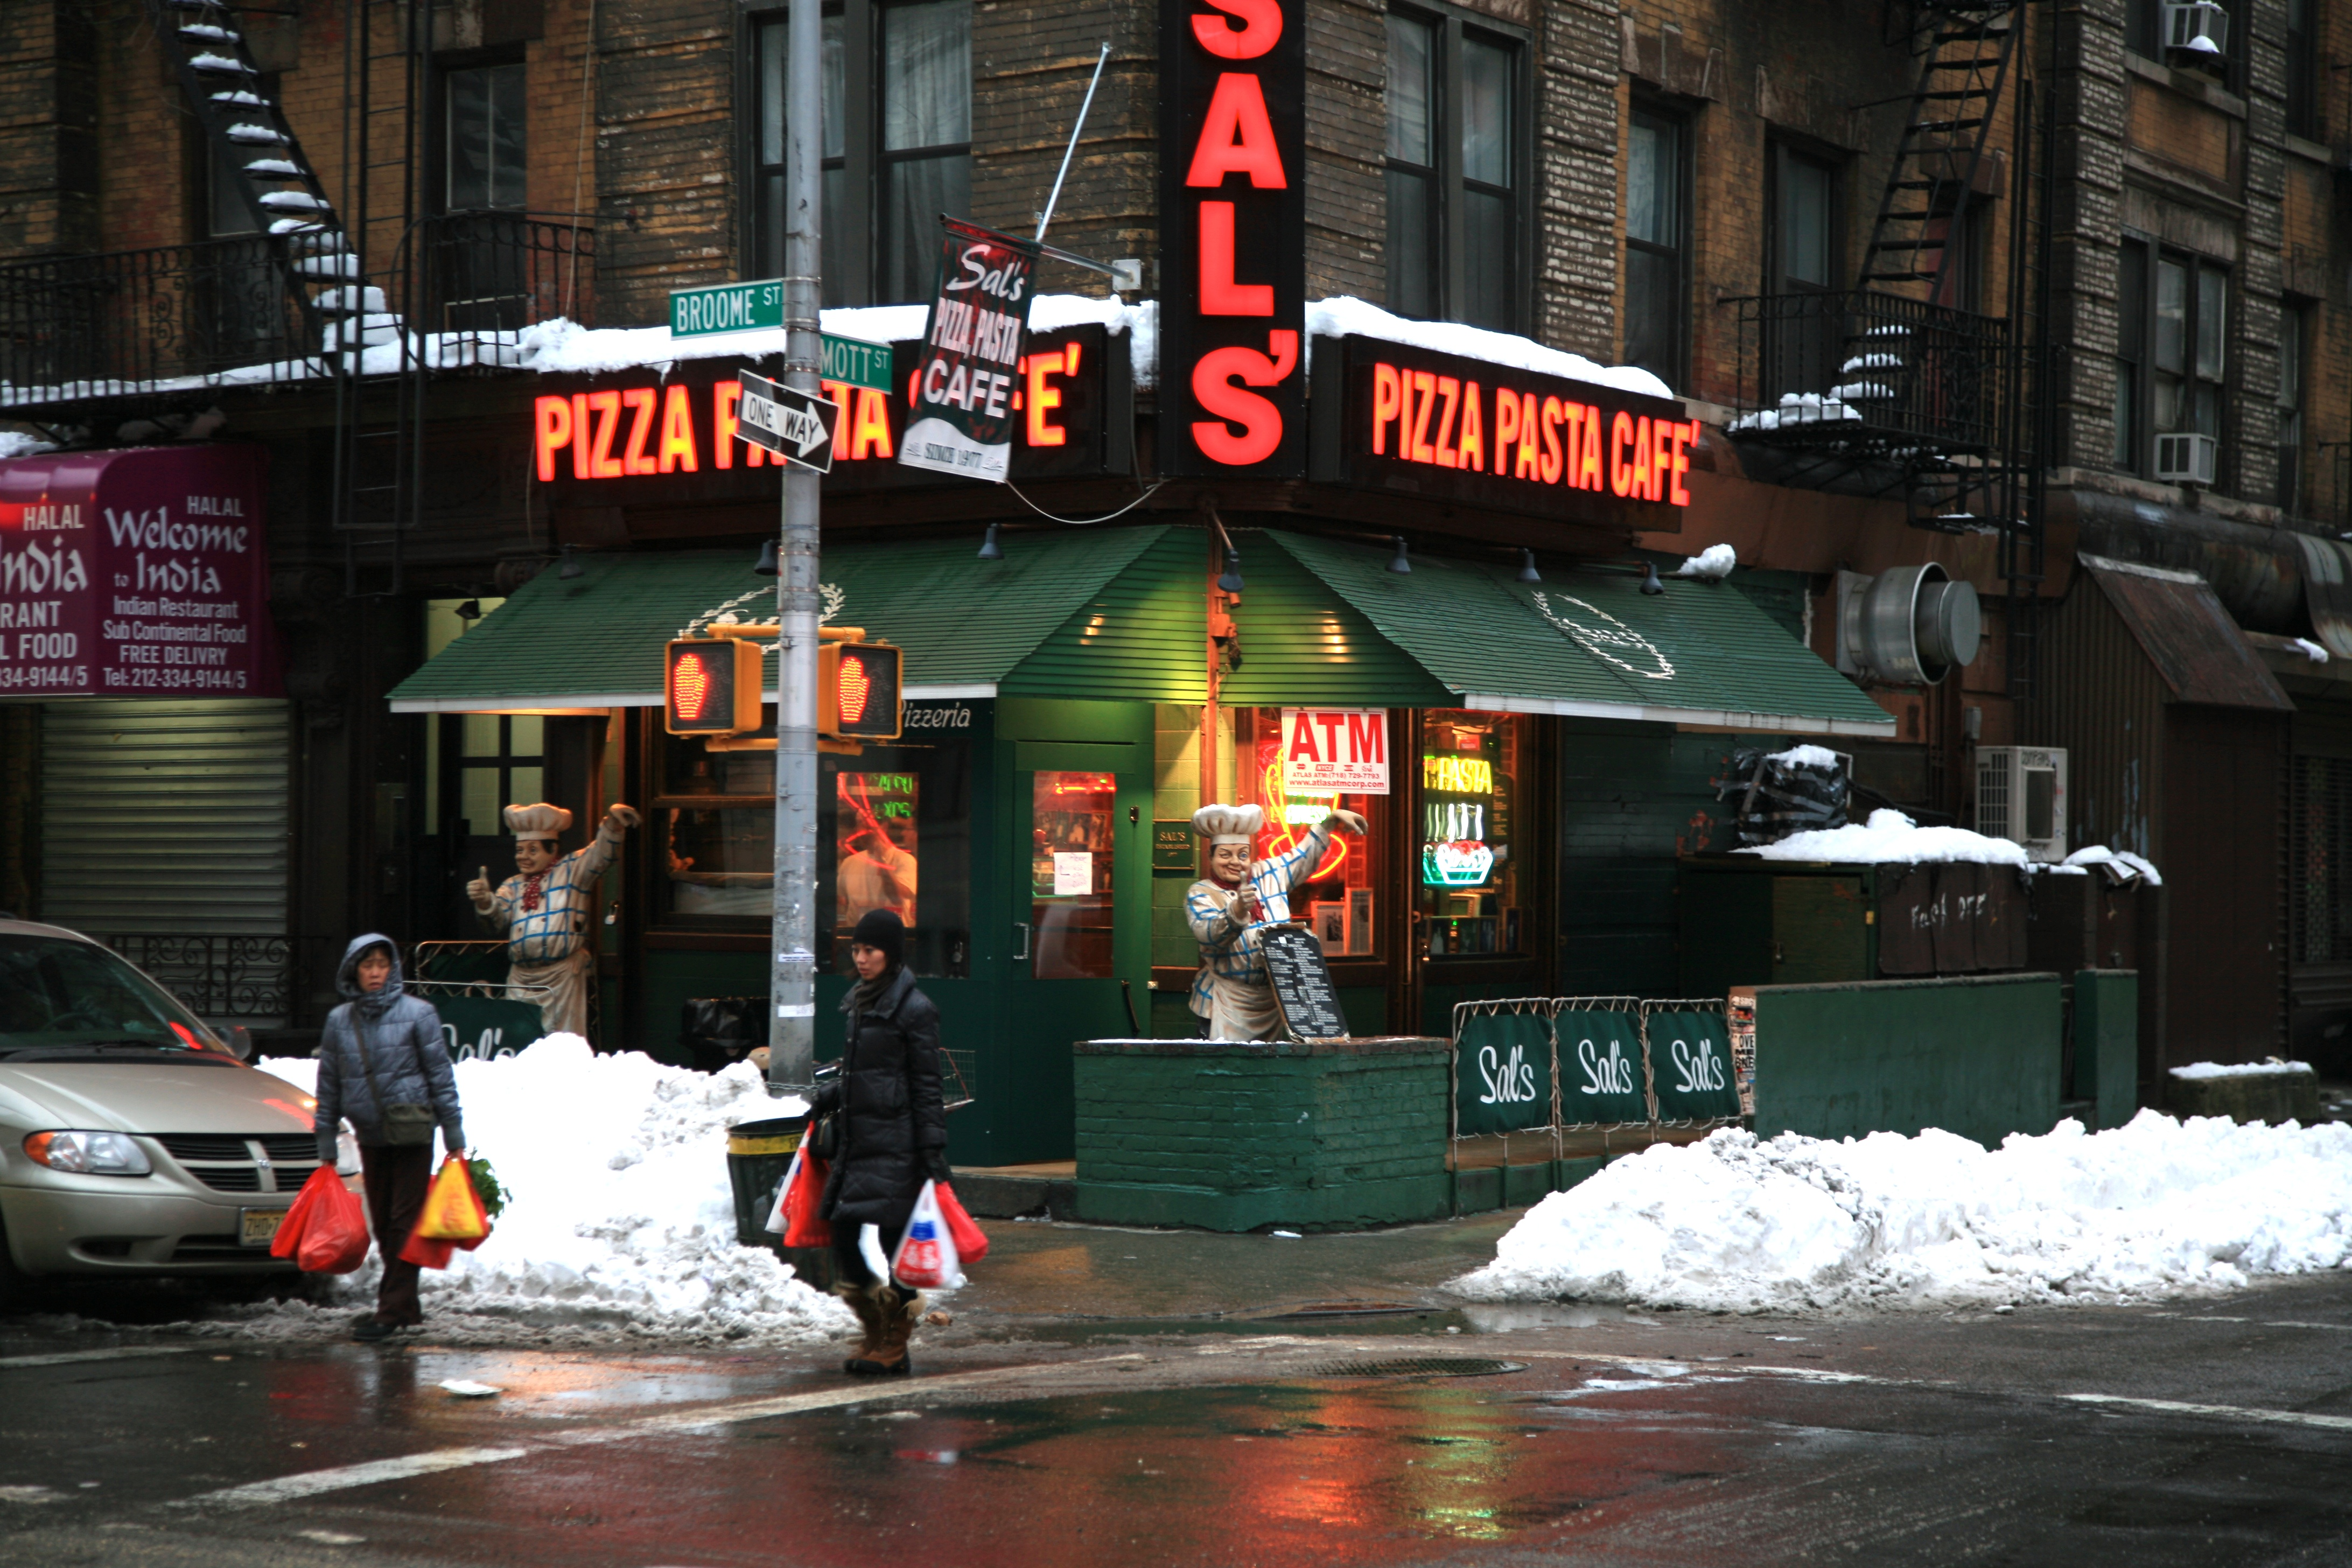 New York Pizza And Pasta Cafe